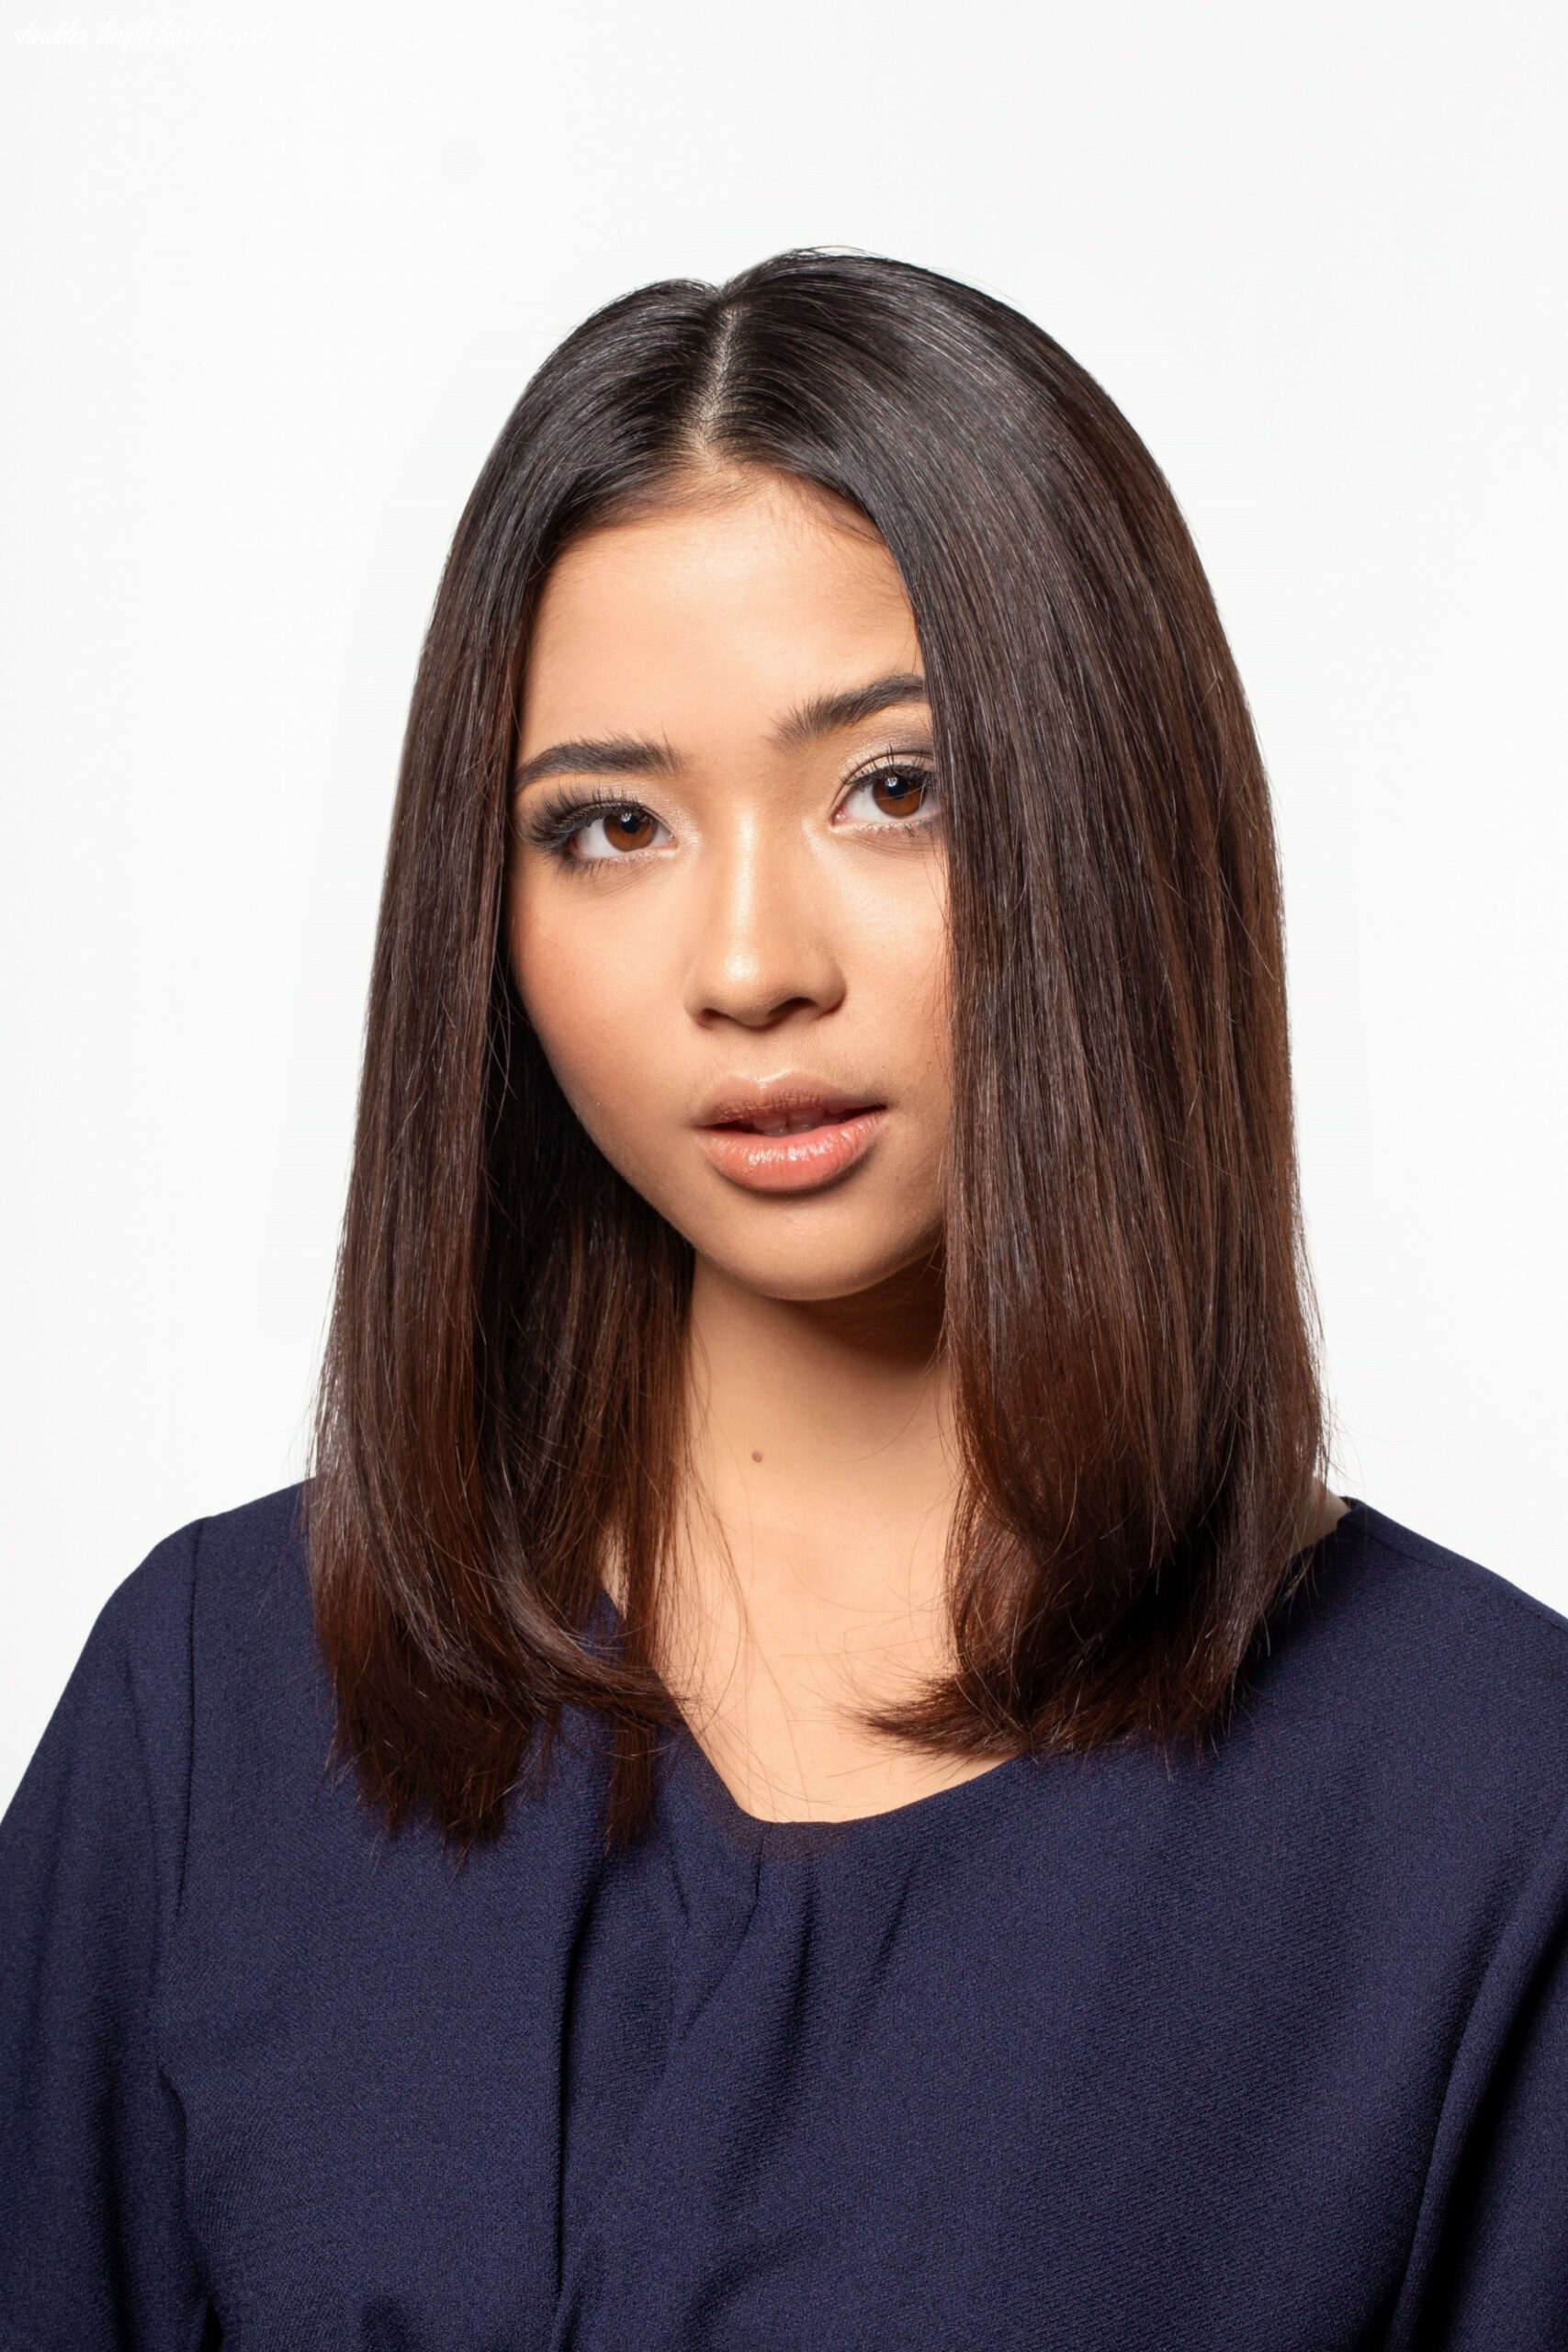 Shoulder length hairstyles for filipinas | all things hair ph shoulder length hair for girls